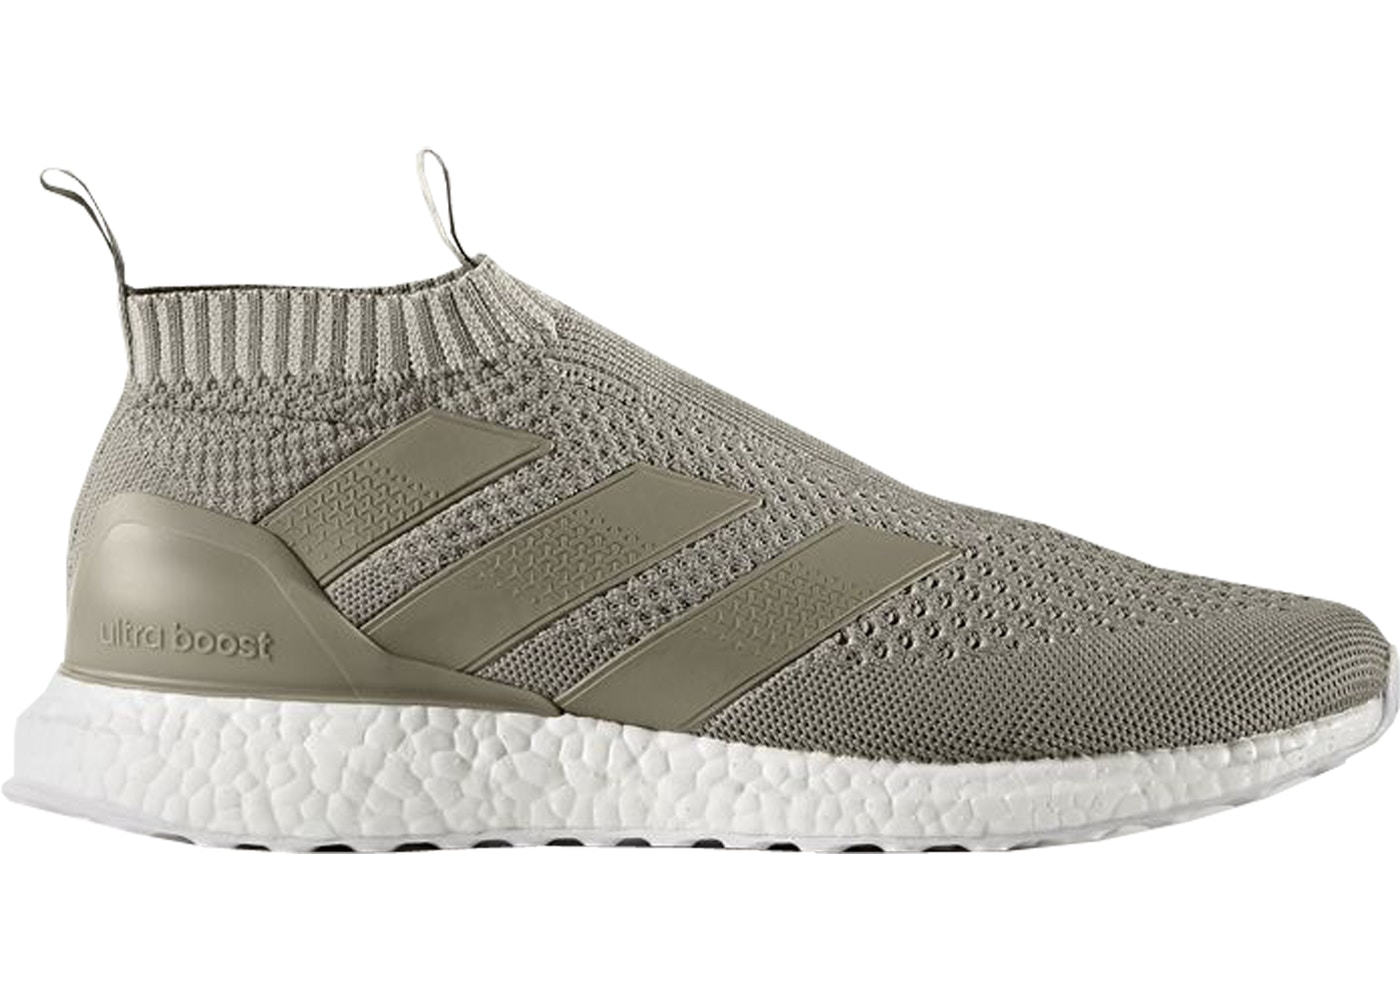 reputable site 2232f 79a8f adidas ACE 16+ Purecontrol Ultra Boost Clay